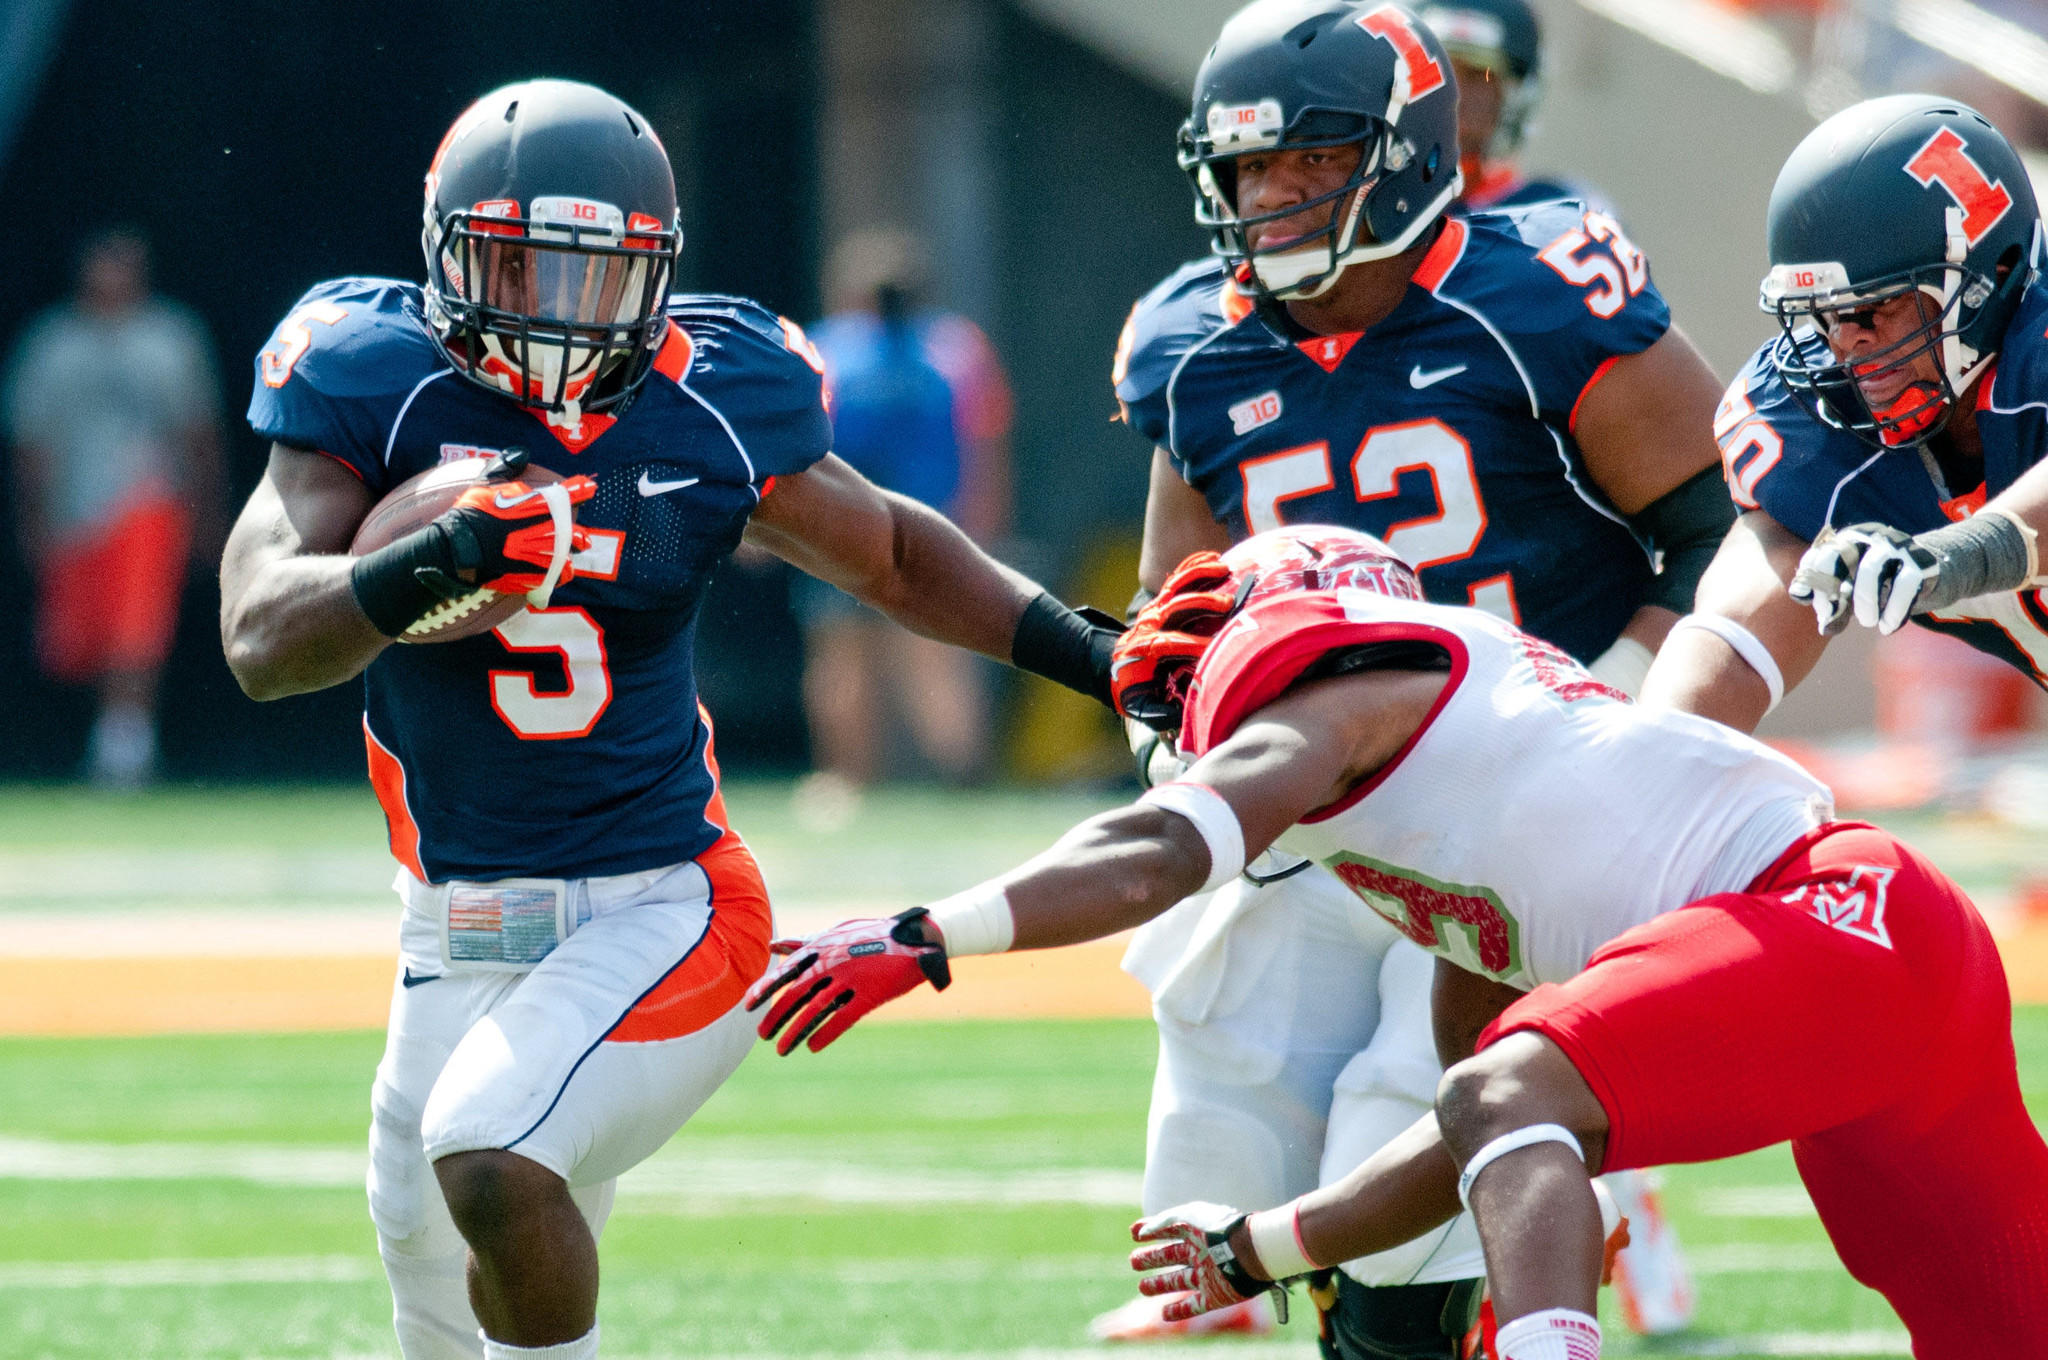 Illini running back Donovonn Young avoids a tackle by Miami's T.J. Williams during the third quarter at Memorial Stadium.